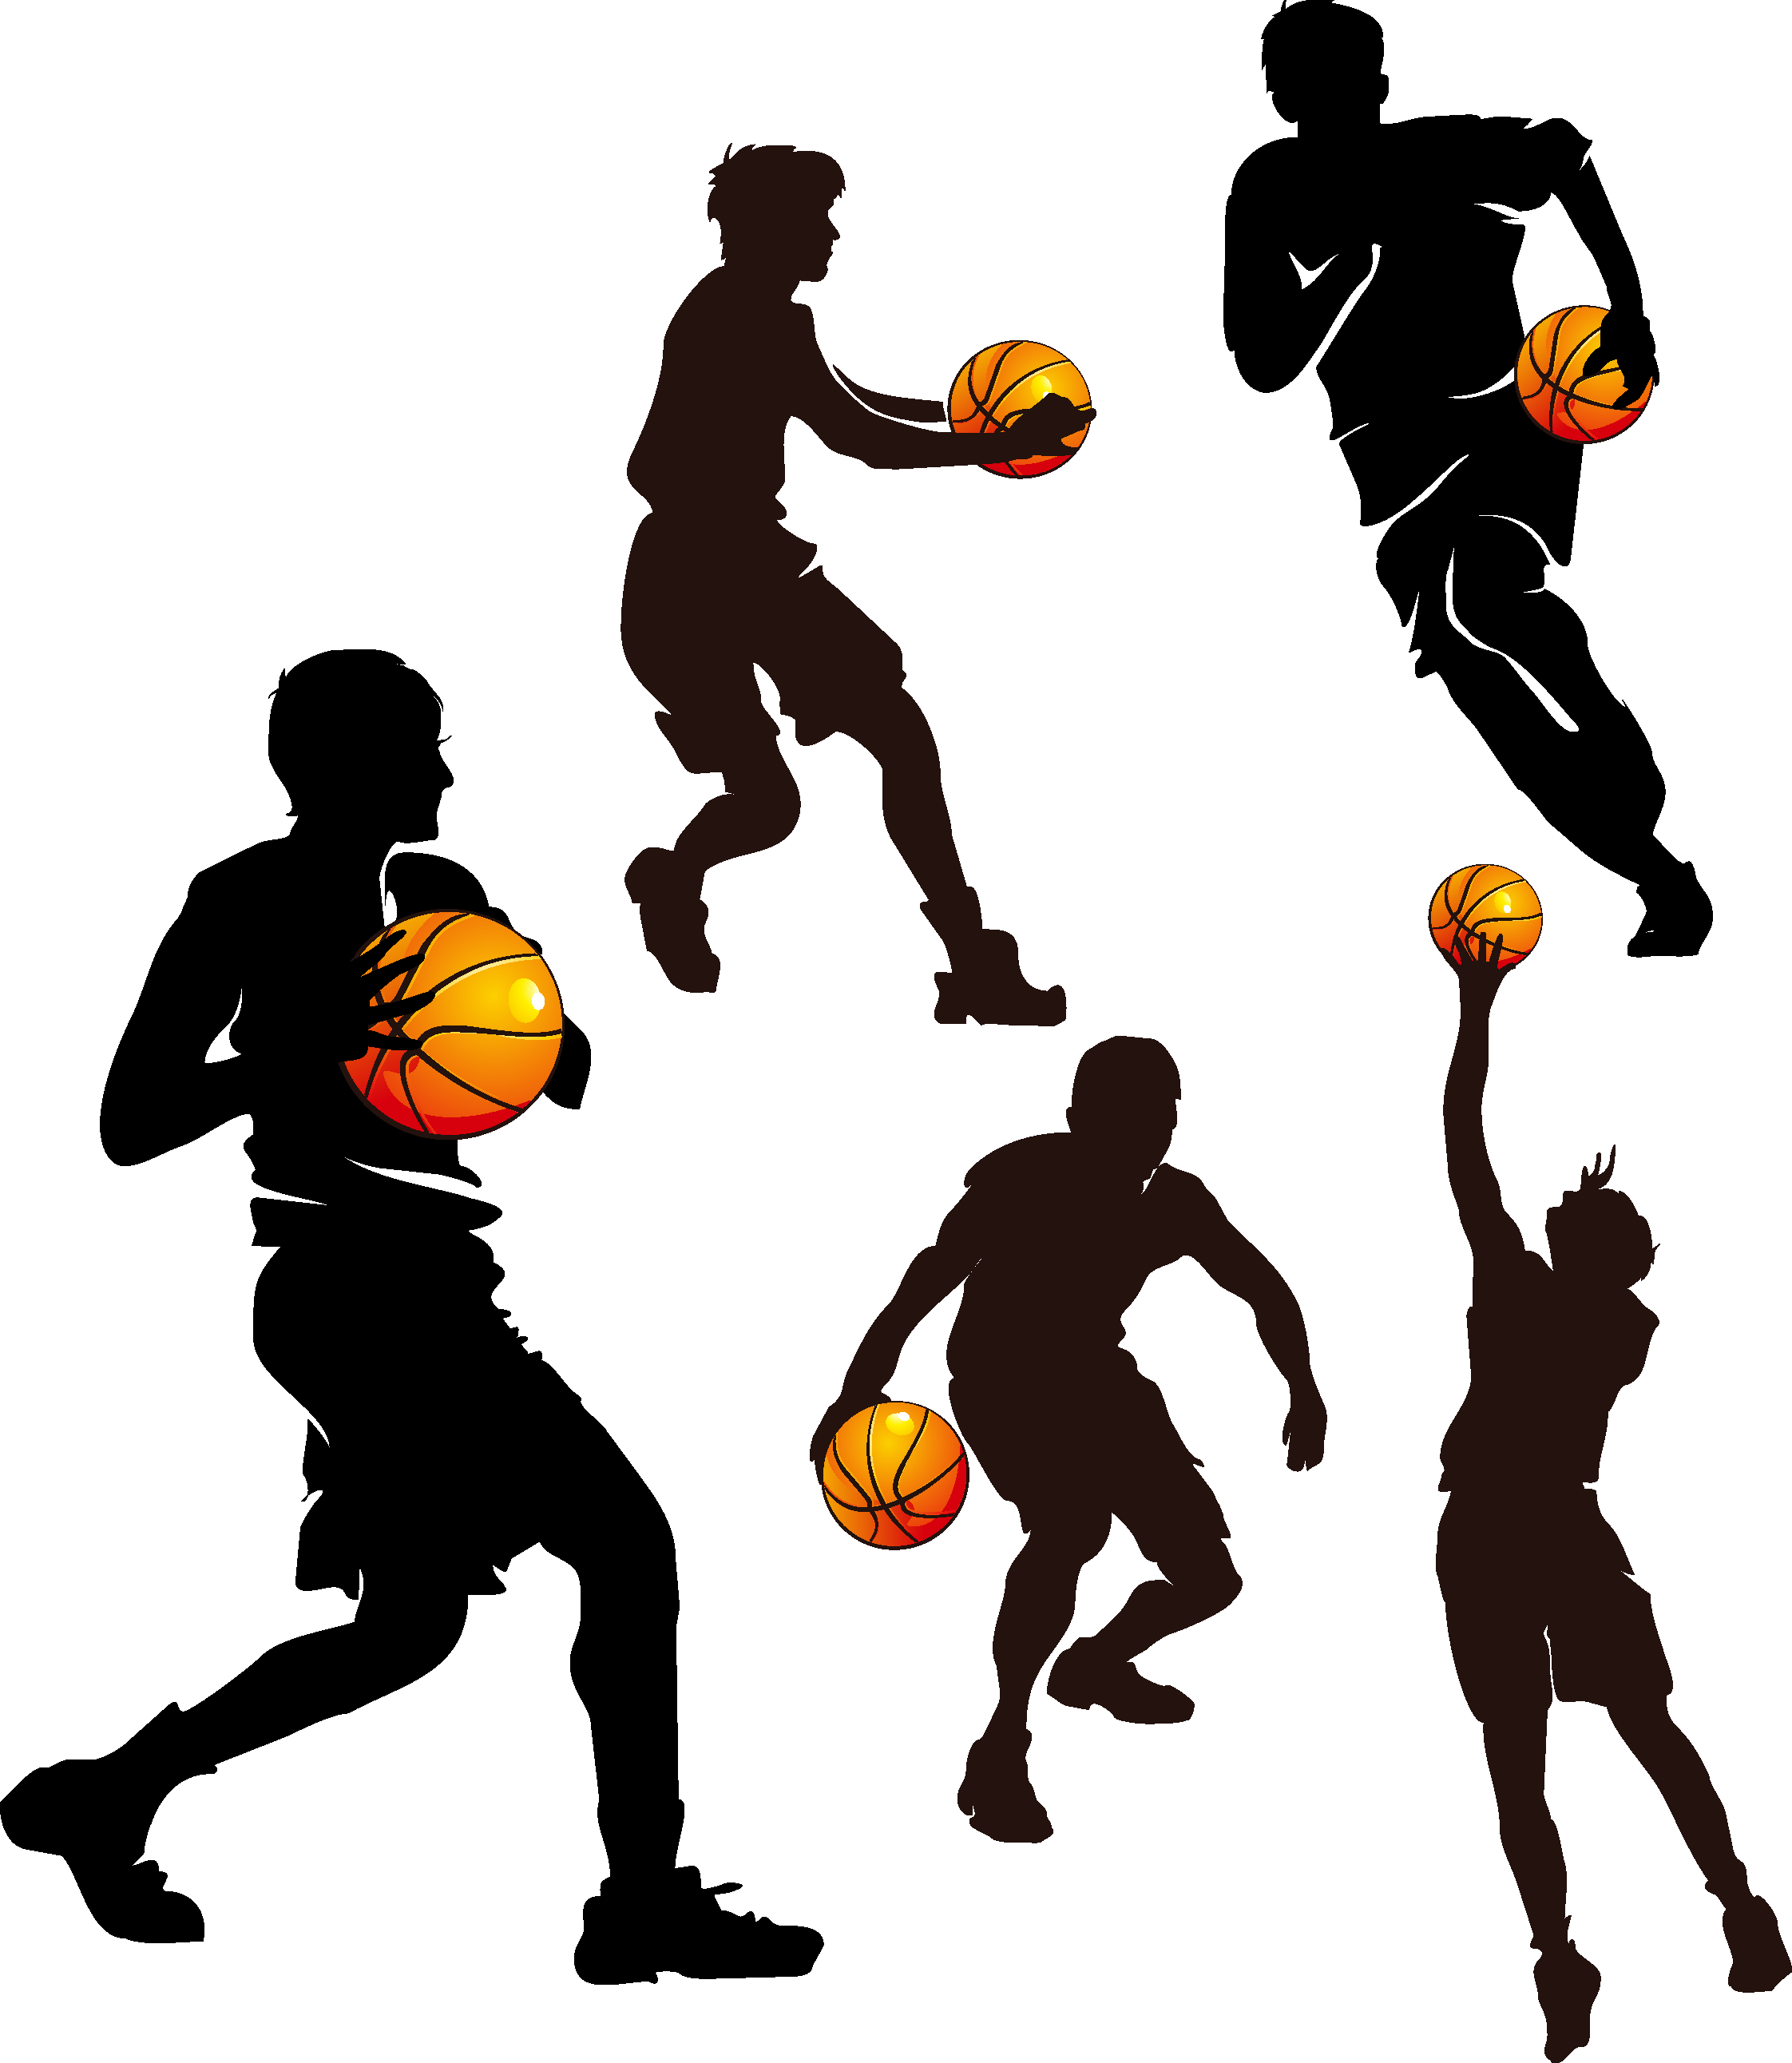 Basketball team free clipart png library Basketball Sport Clip art - Basketball Silhouette 2244*2583 ... png library